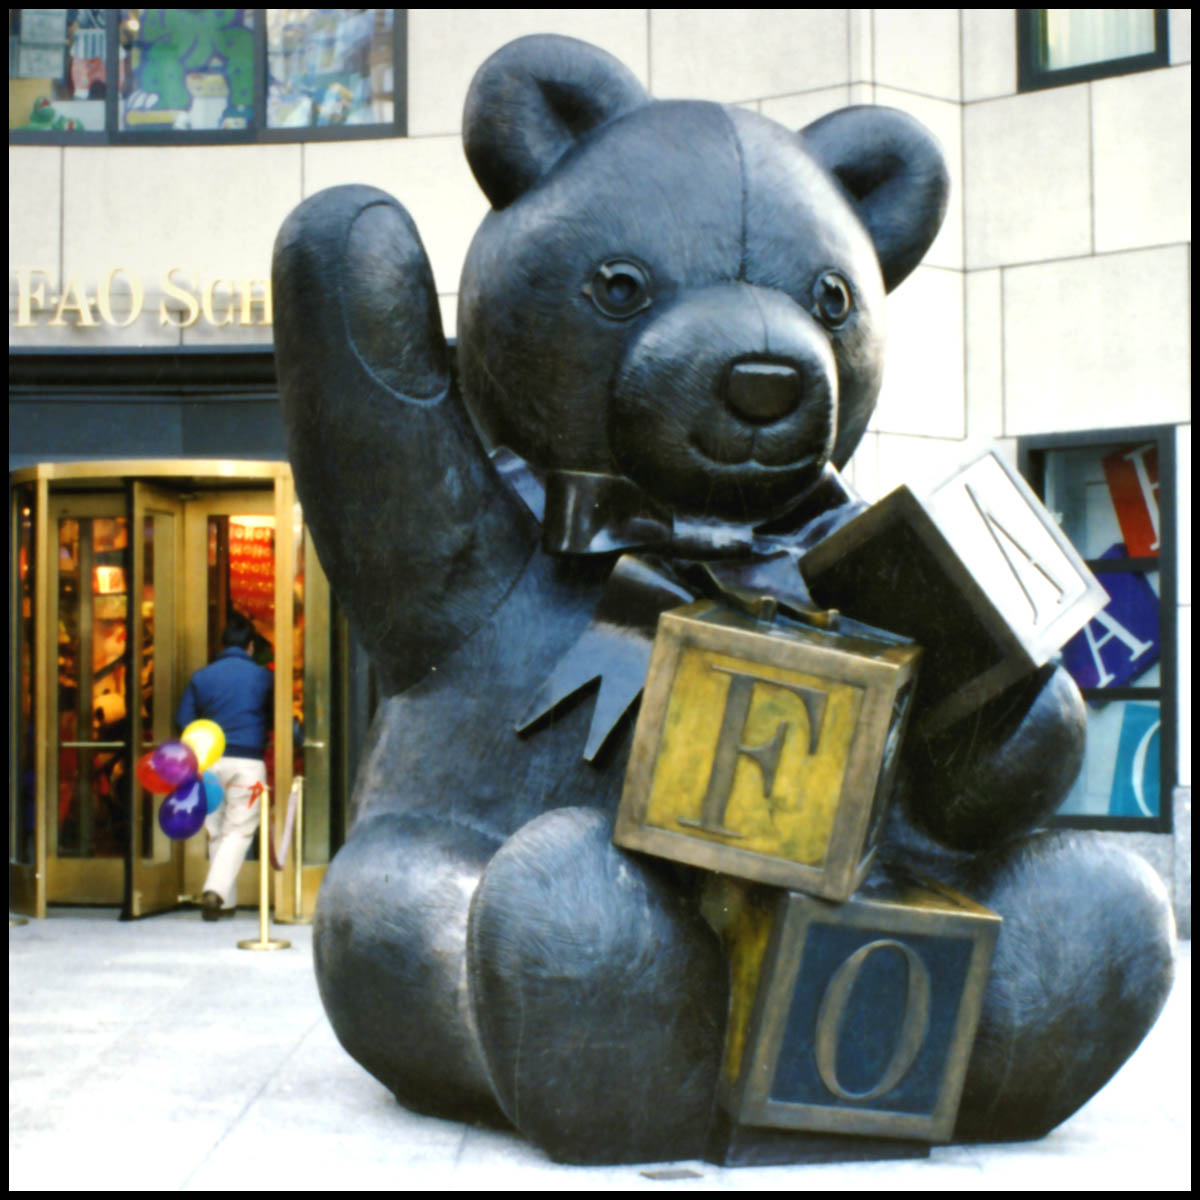 photo of bronze teddy bear with arm raised and holding blocks in front of city store